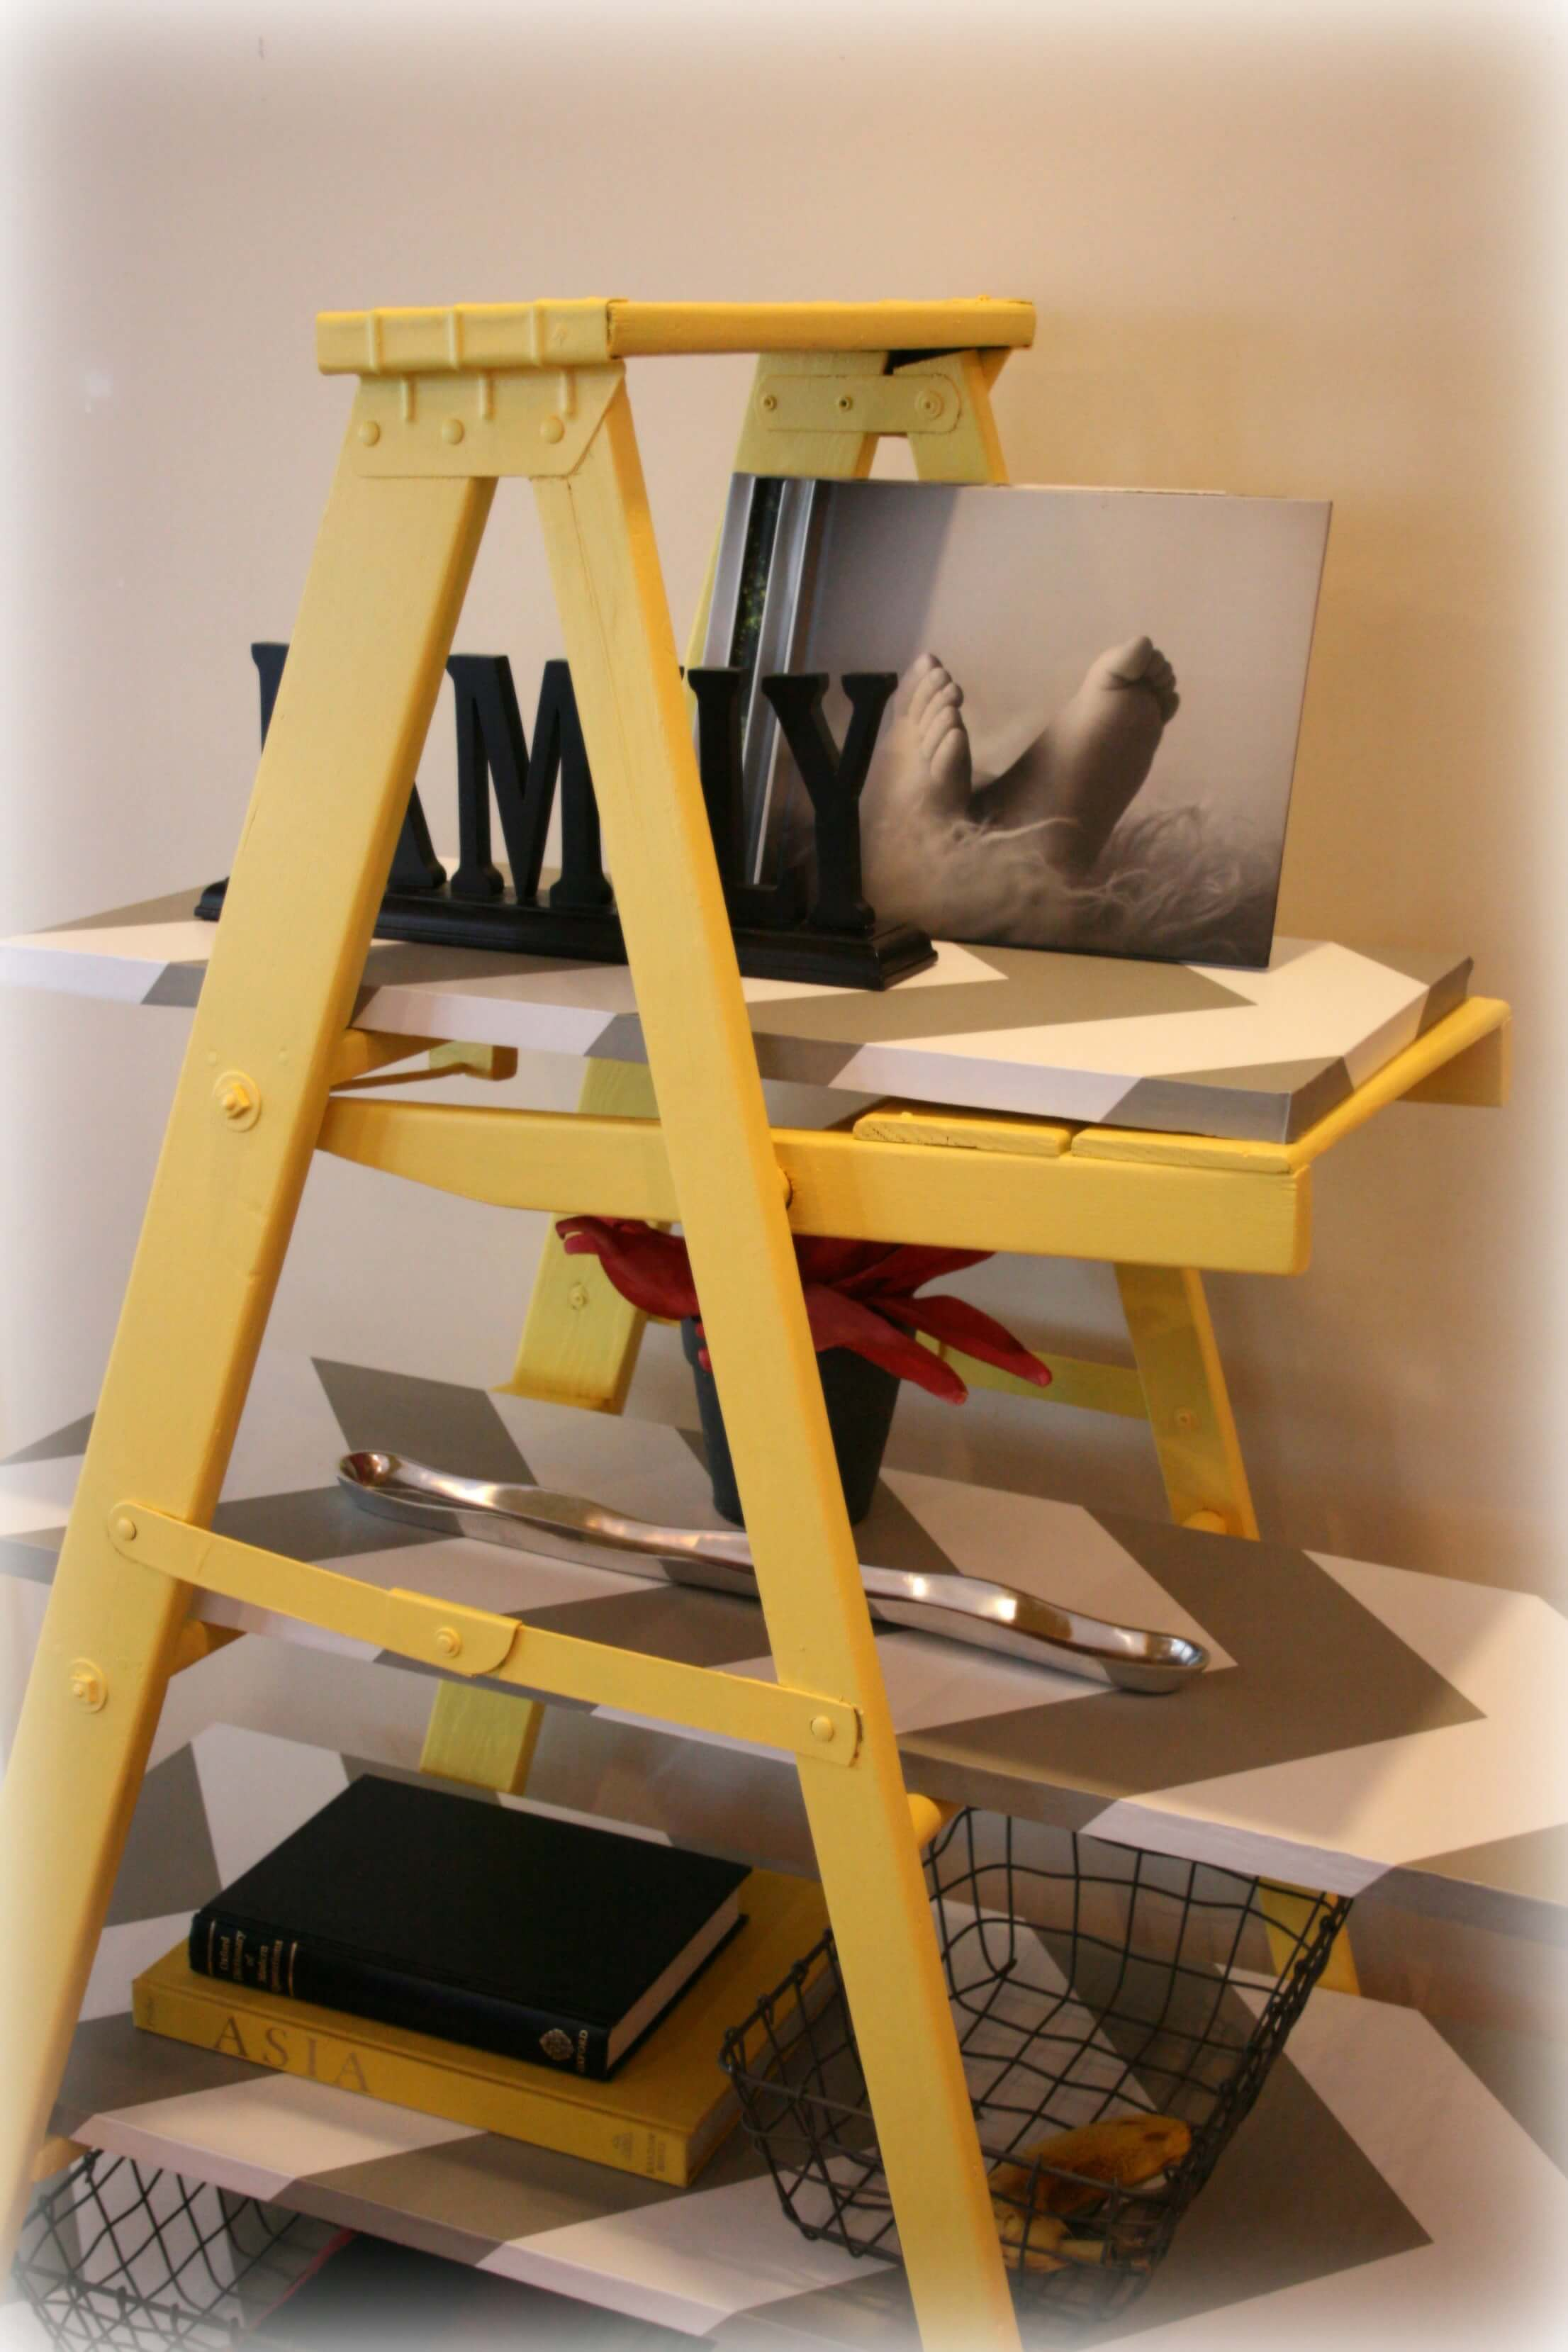 Top-down view of Heidi Marsh's leaning book shelf ladder in yellow